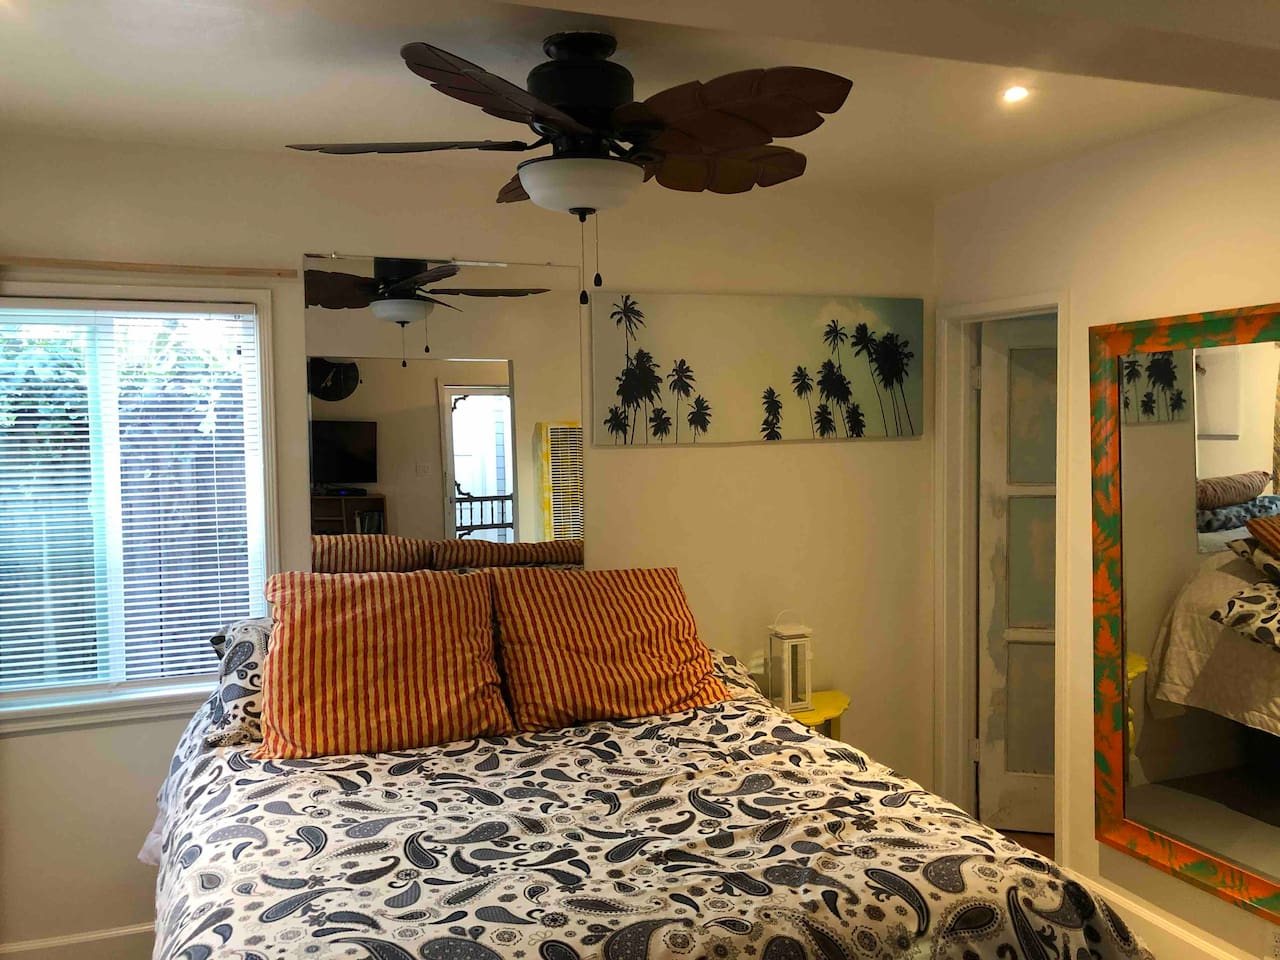 This is another wonderful picture of your cozy bed looking in from the living room of the kitchen to the right is the bathroom the bed has comfort pads completely Cozy with windows view of the court yard out side